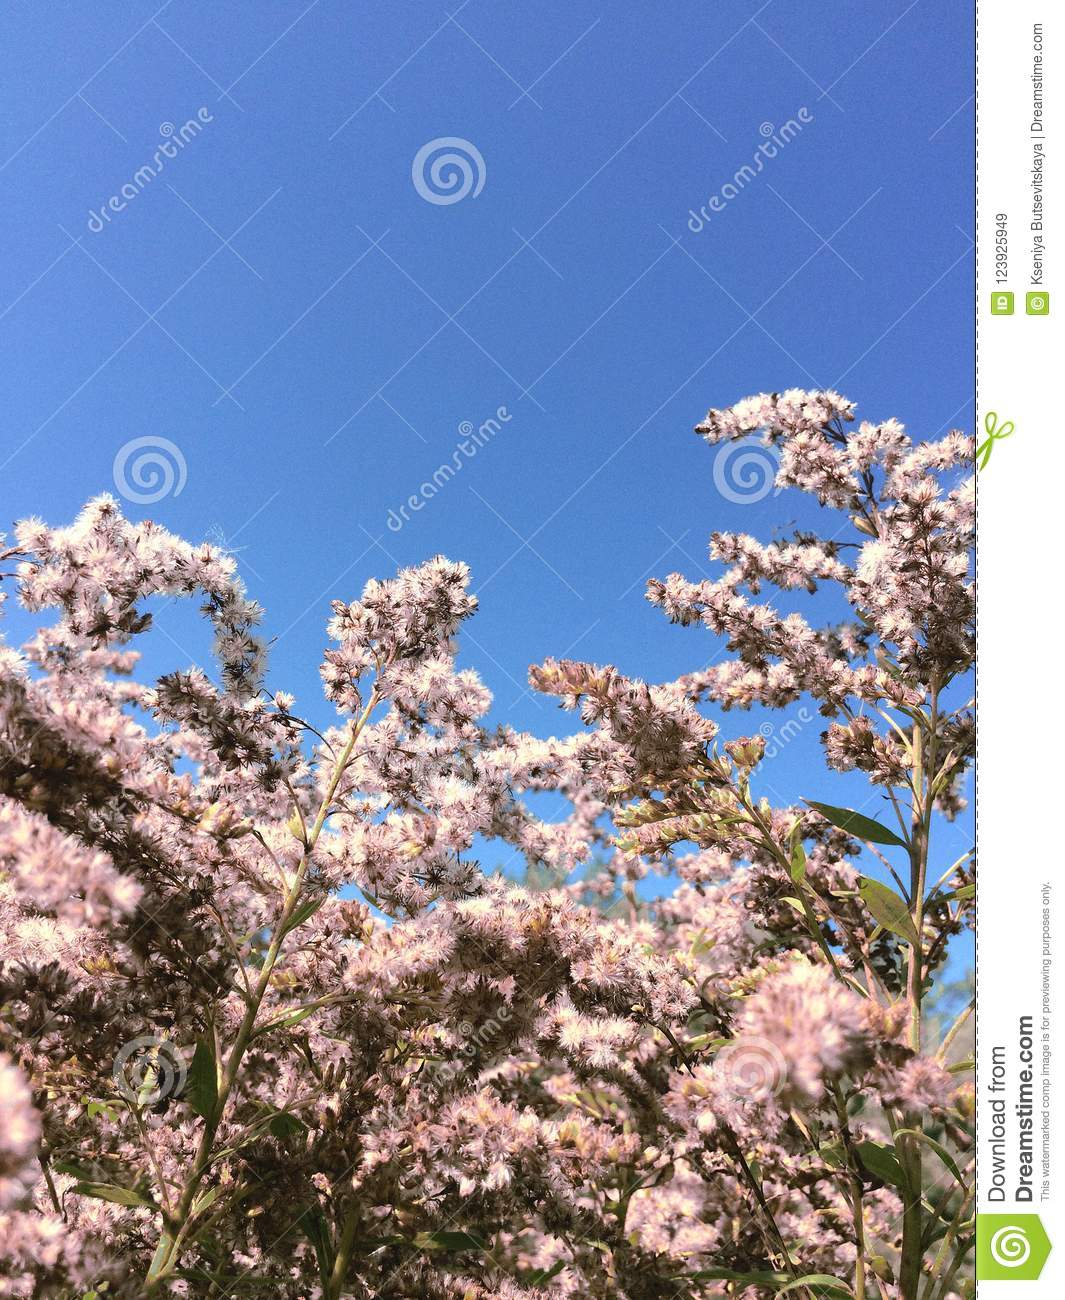 Field pink flowers, blue sky